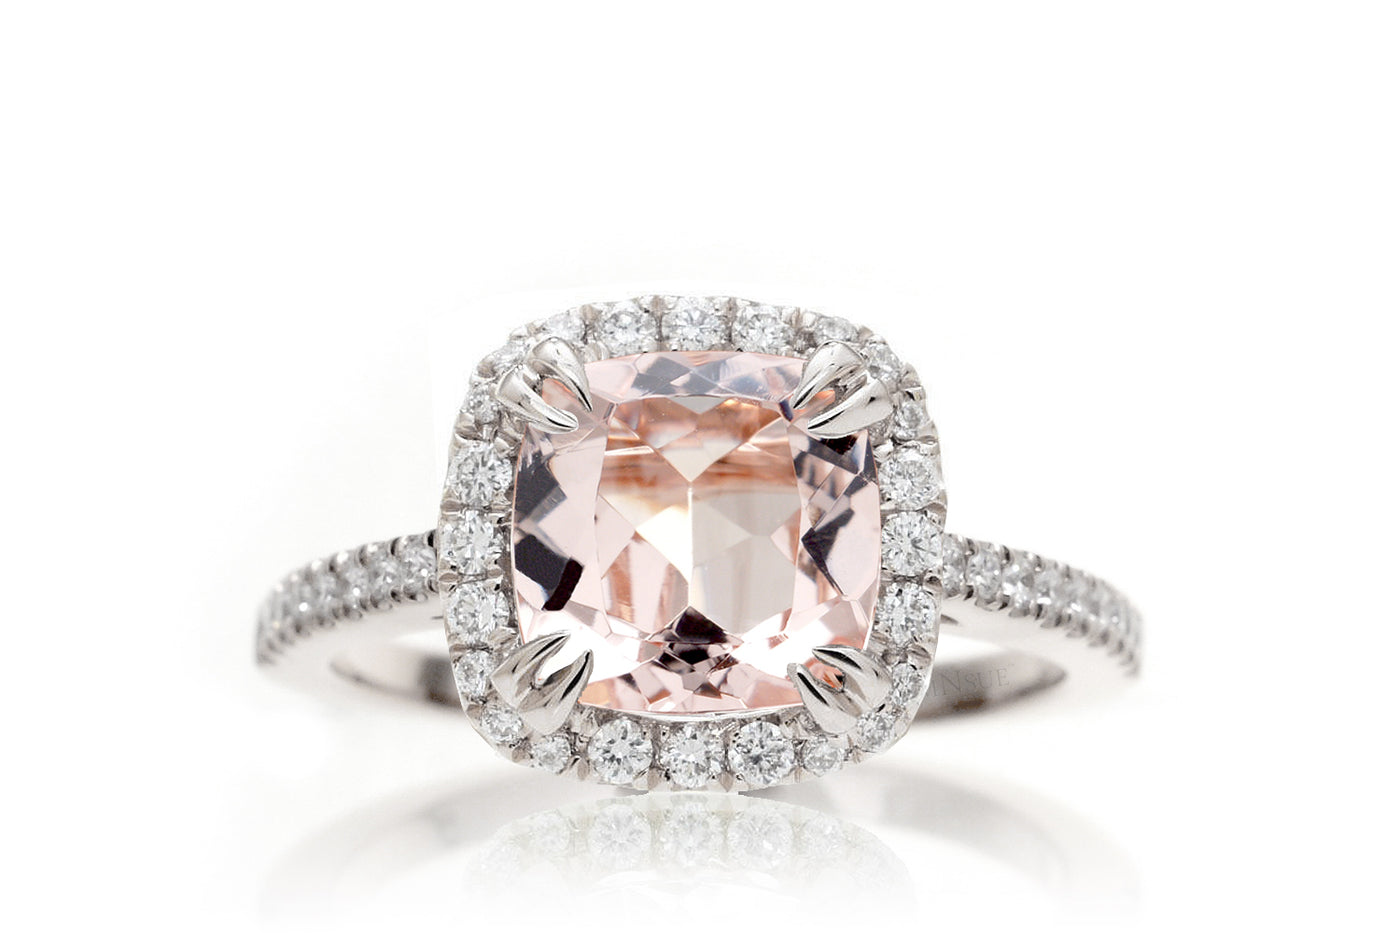 Morganite ring cushion 7x7 diamond halo cathedral setting engagement ring peachy pink